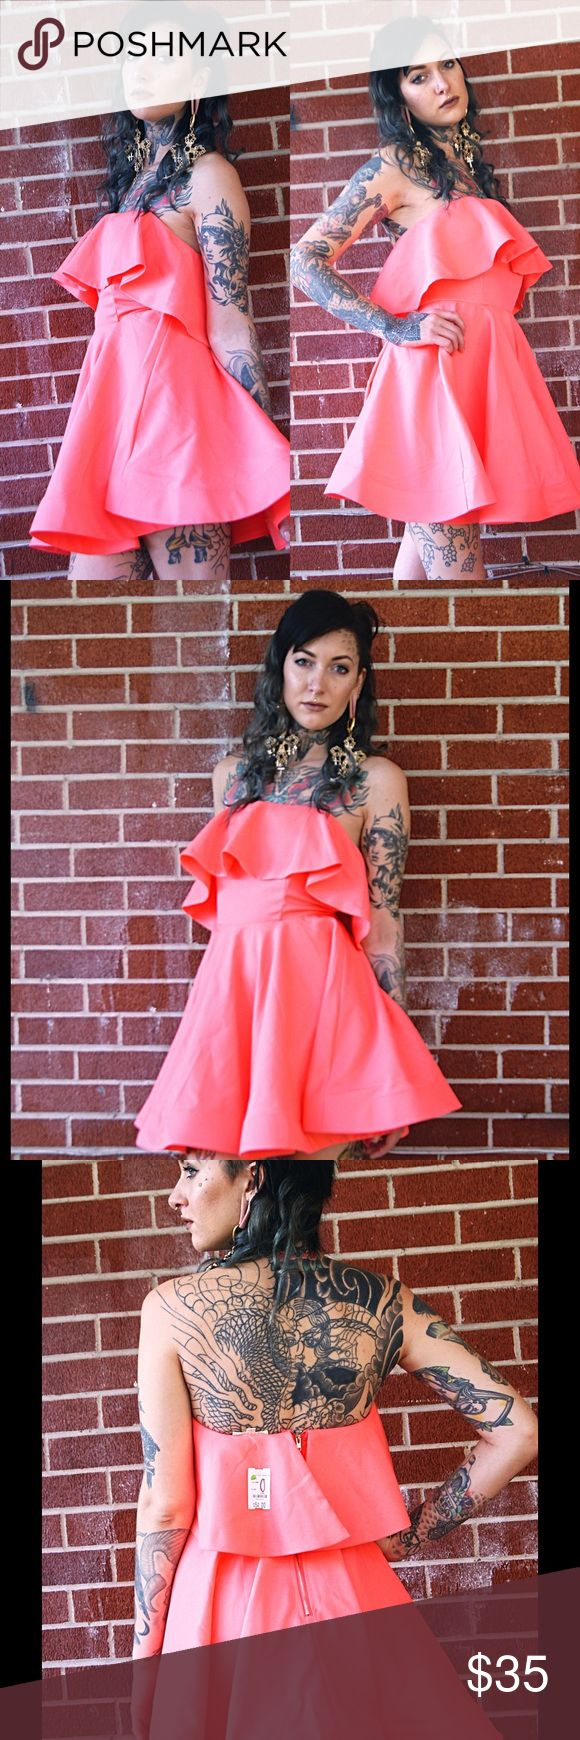 Luxxel salmon orange Dress strapless empire waist Size: 0 small Band: Luxxel NWT has a non slip lining and is zipper back. Super cute full skirt. Strapless fits great. Didn't have an occasion to wear it though luxxel Dresses Strapless